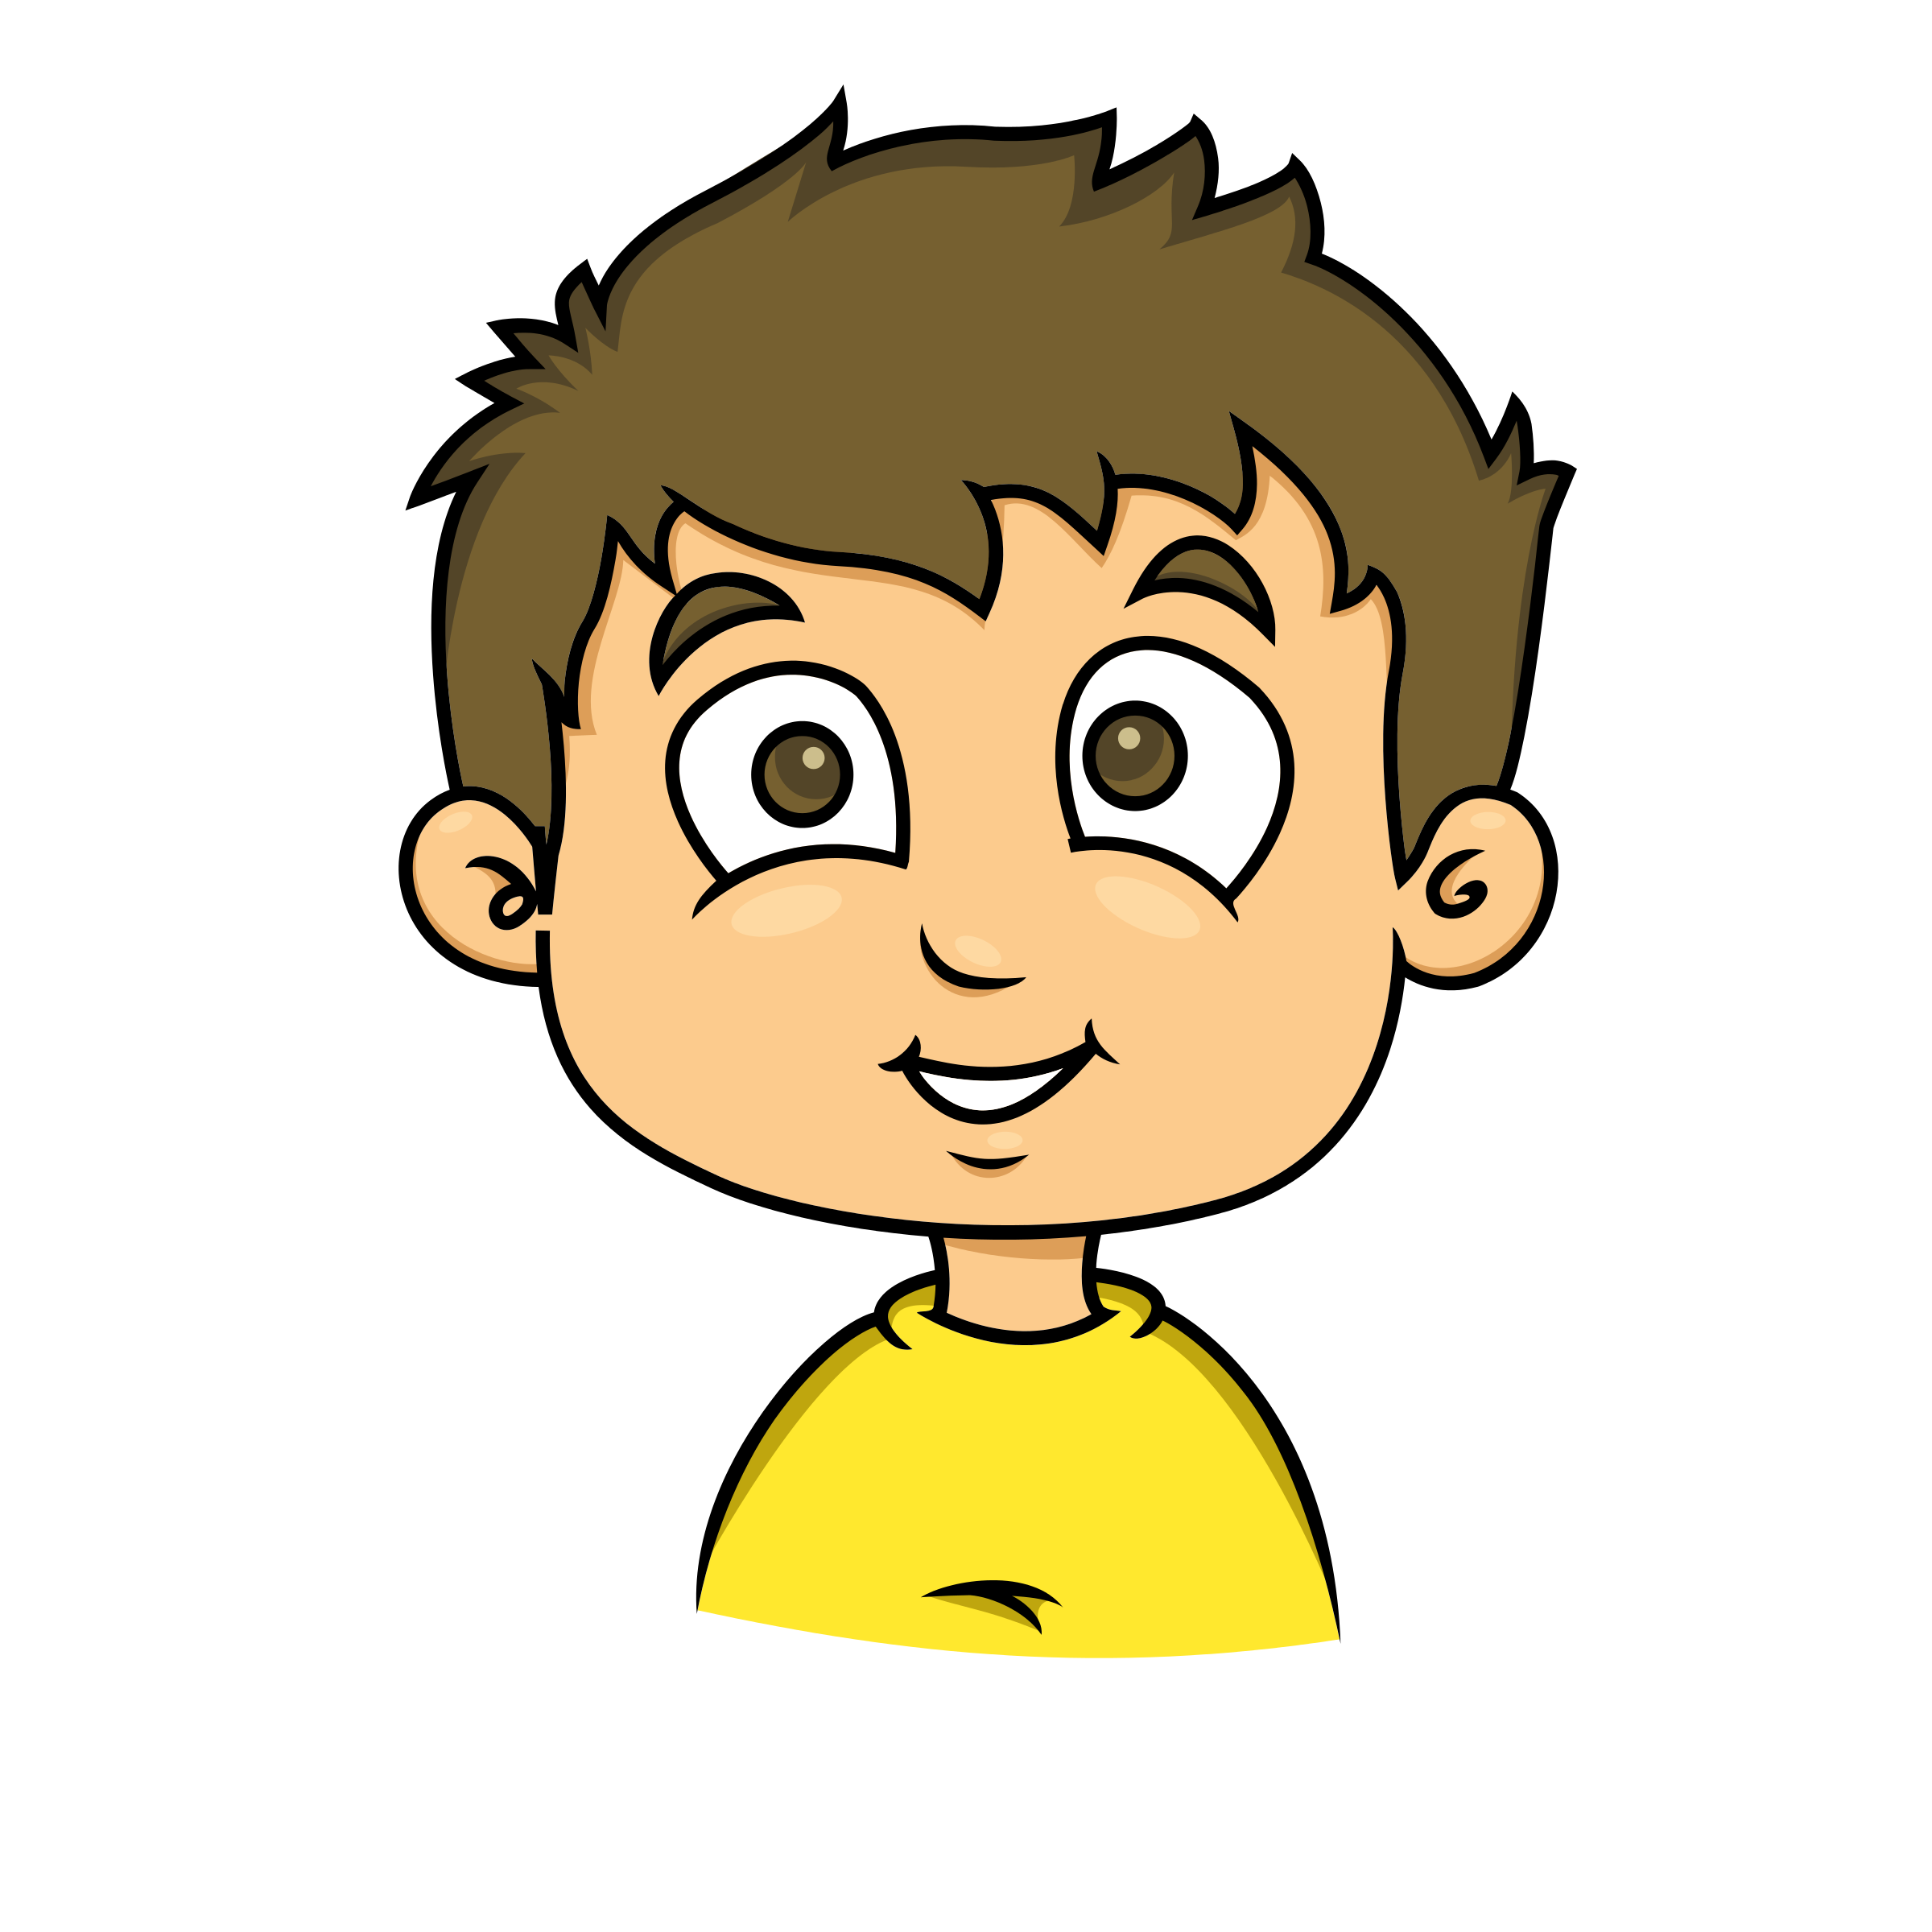 kids smiling png hd transparent kids smiling hd images. | pluspng